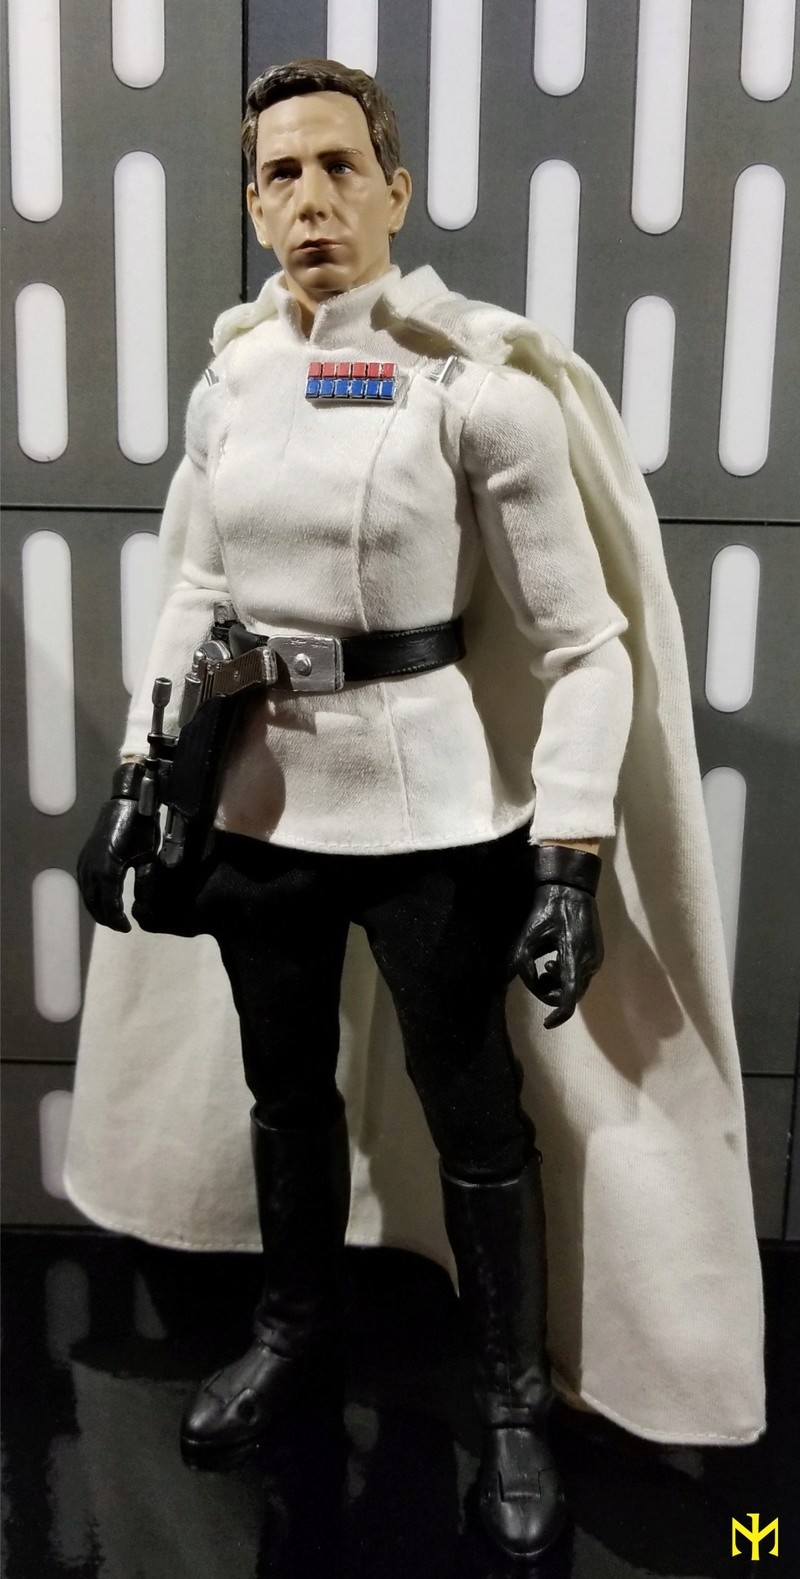 Product Review Disney Star Wars Elite Series Director Orson Krennic Premium Action Figure Krenni14